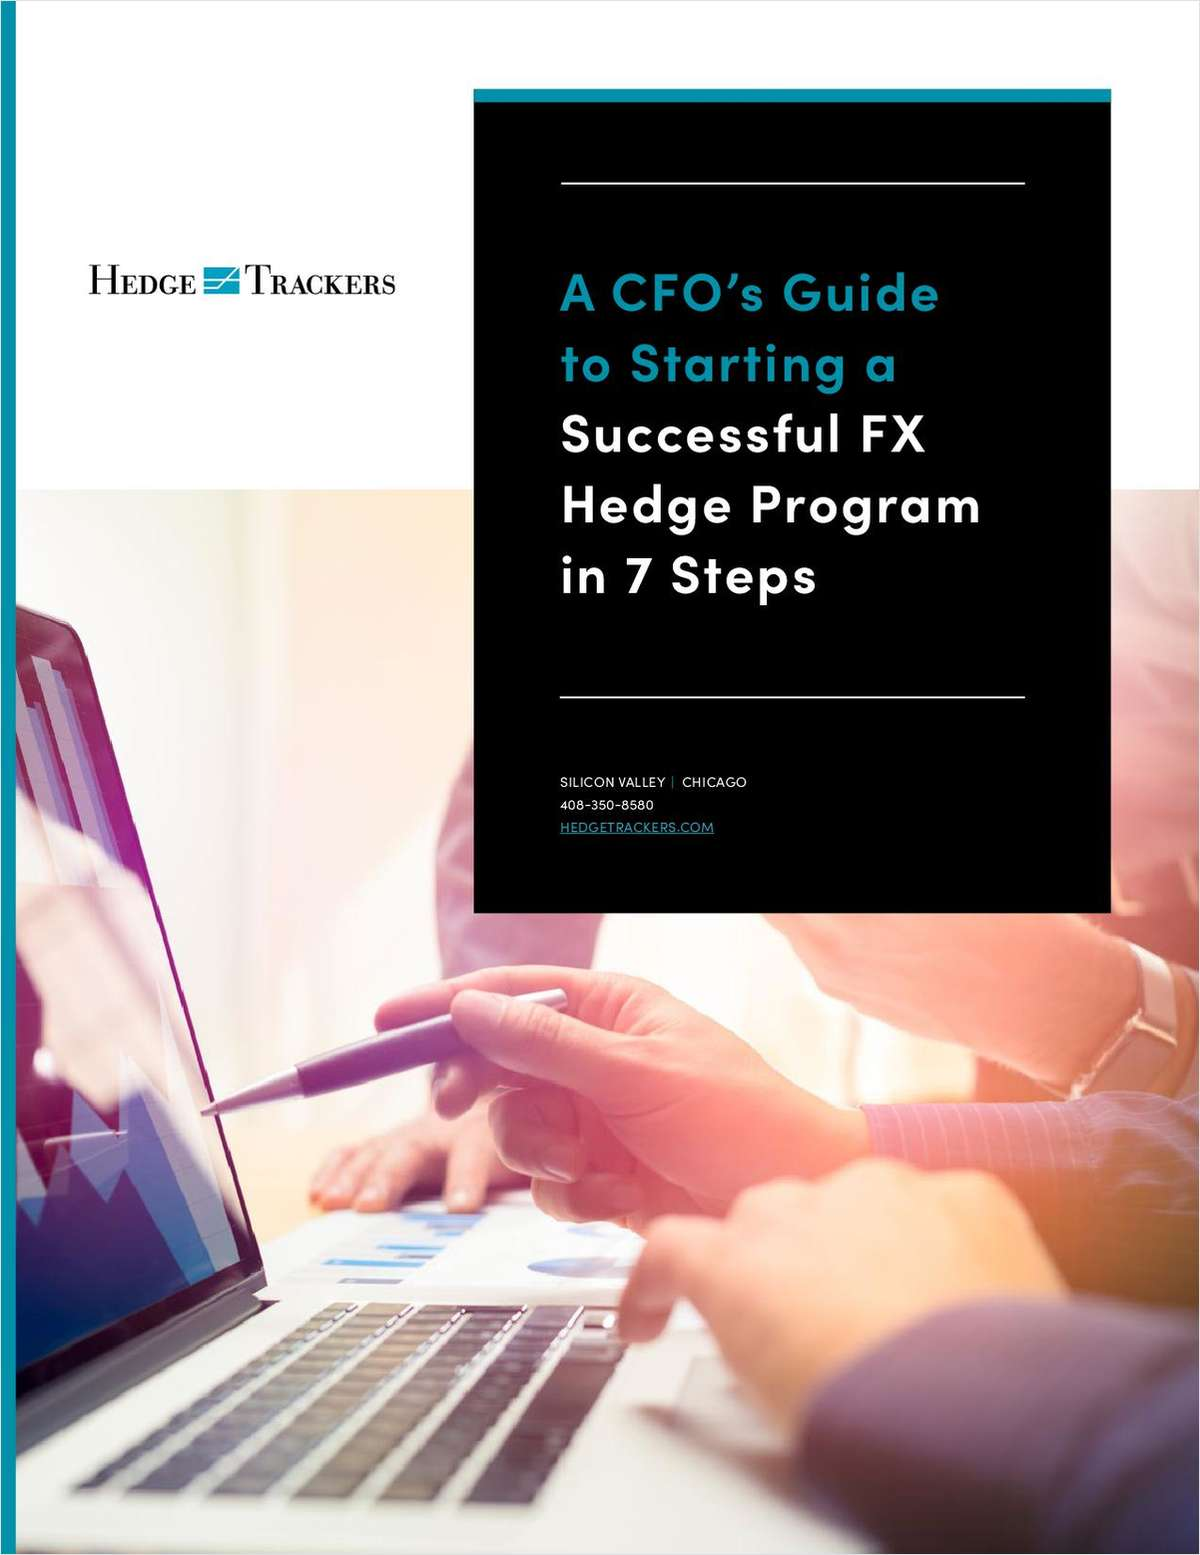 A CFO's Guide to Starting a Successful FX Hedge Program in 7 Steps